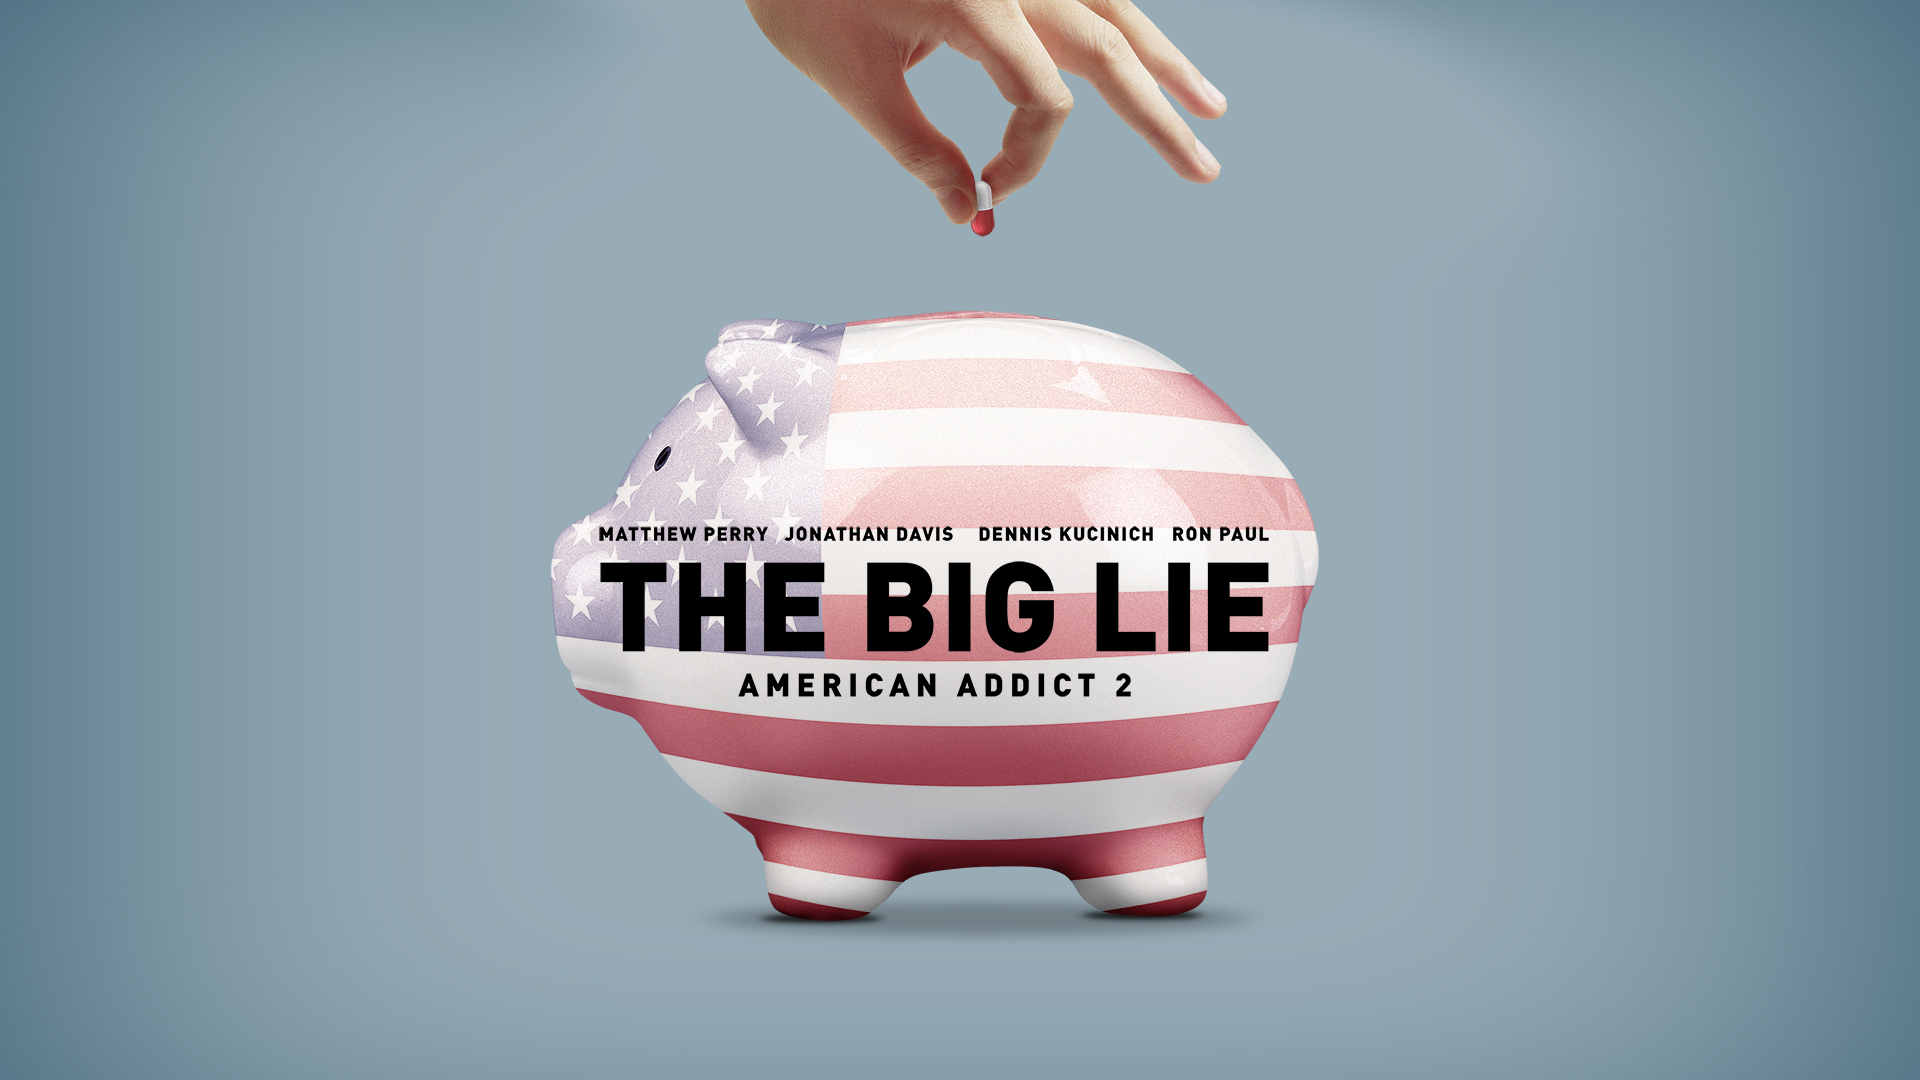 The Big Lie: American Addict 2